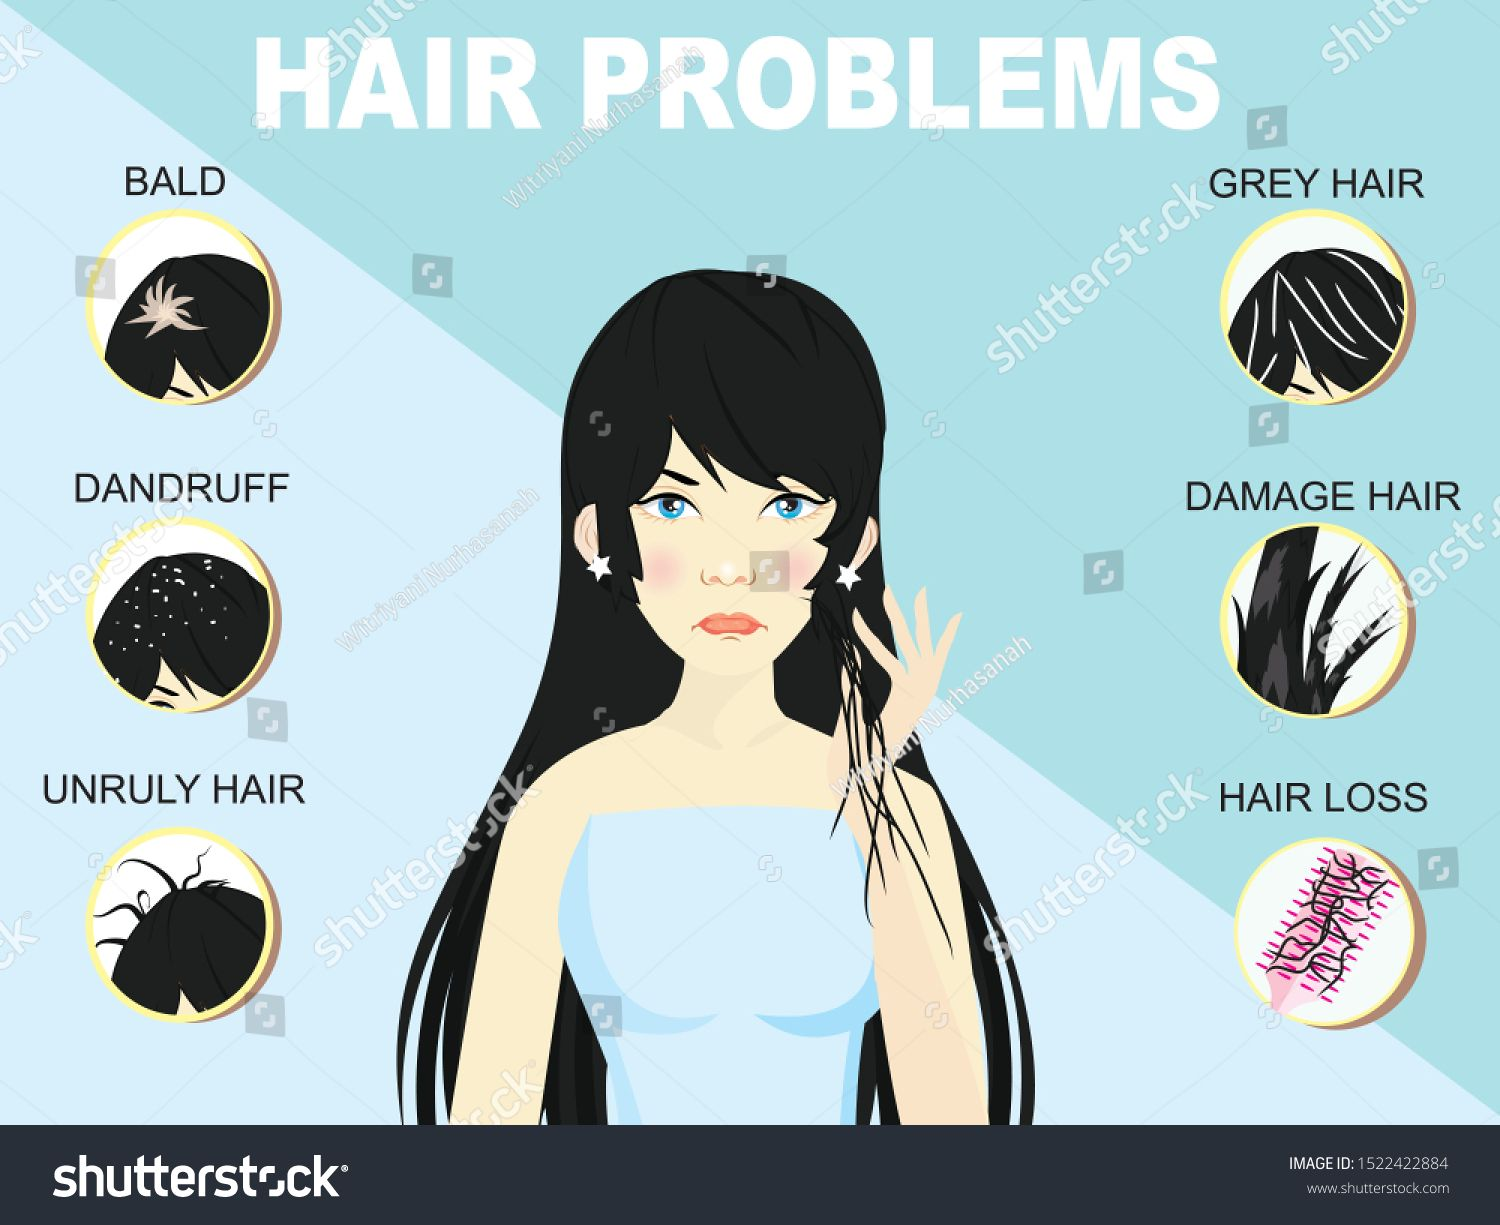 Hair Problems Illustration Woman Blue Background Stock Vector (Royalty Free) 1522422884